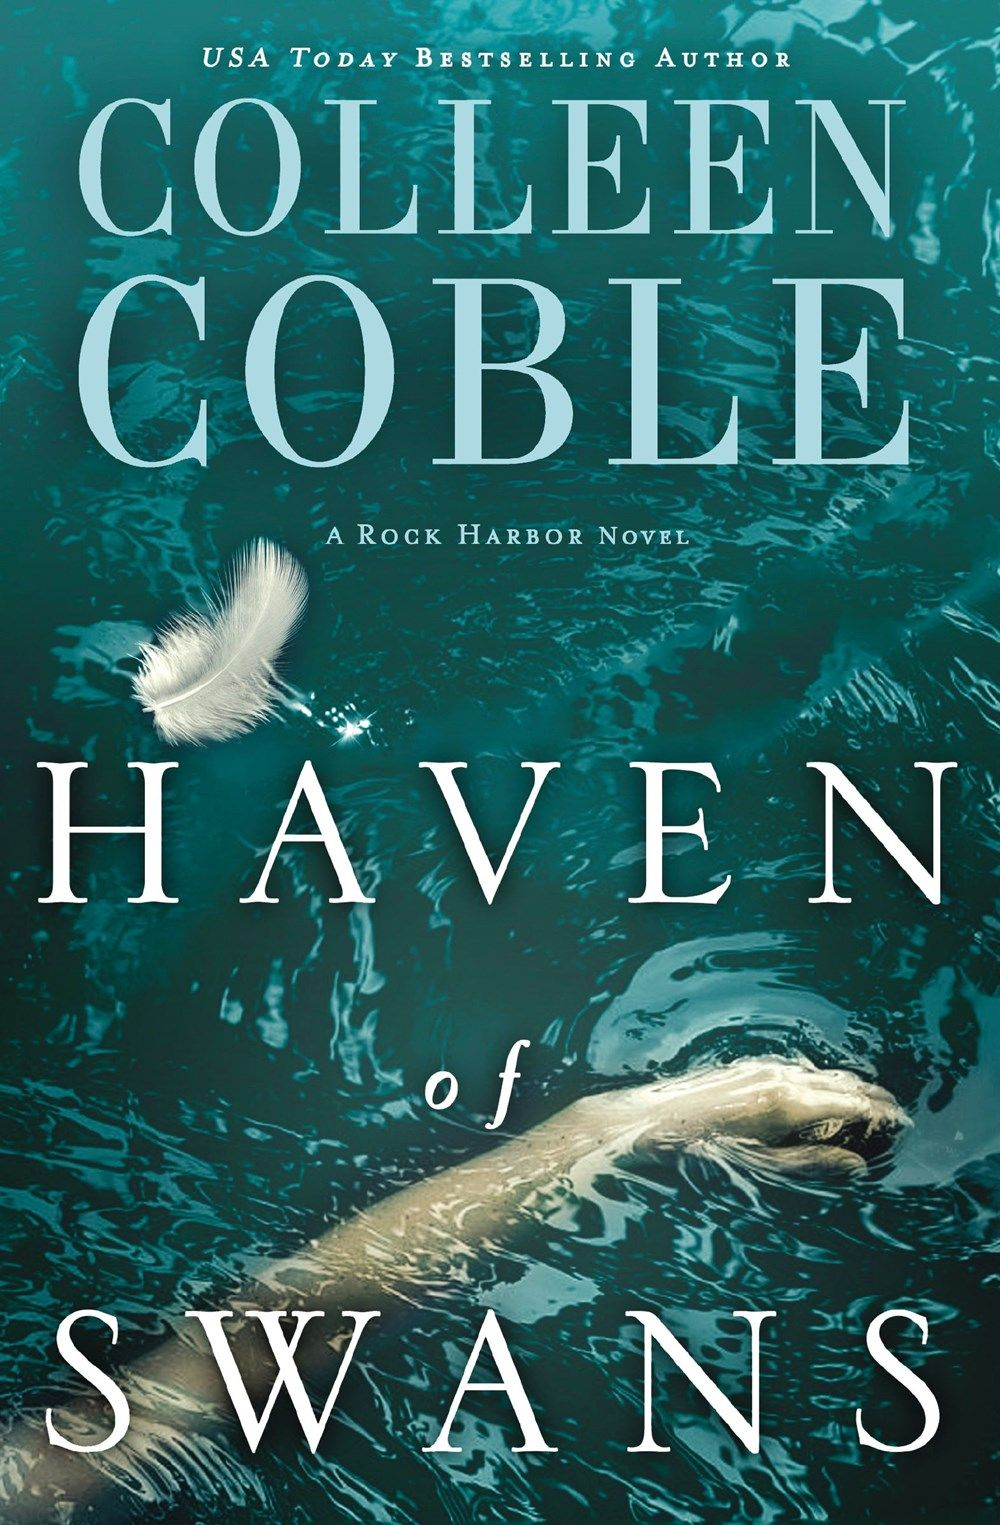 Colleen Coble Haven Of Swans Https Www Goodreads Com Book Show 30649497 Haven Of Swan From Search True Searc Colleen Coble Mystery Romance Novels To Read